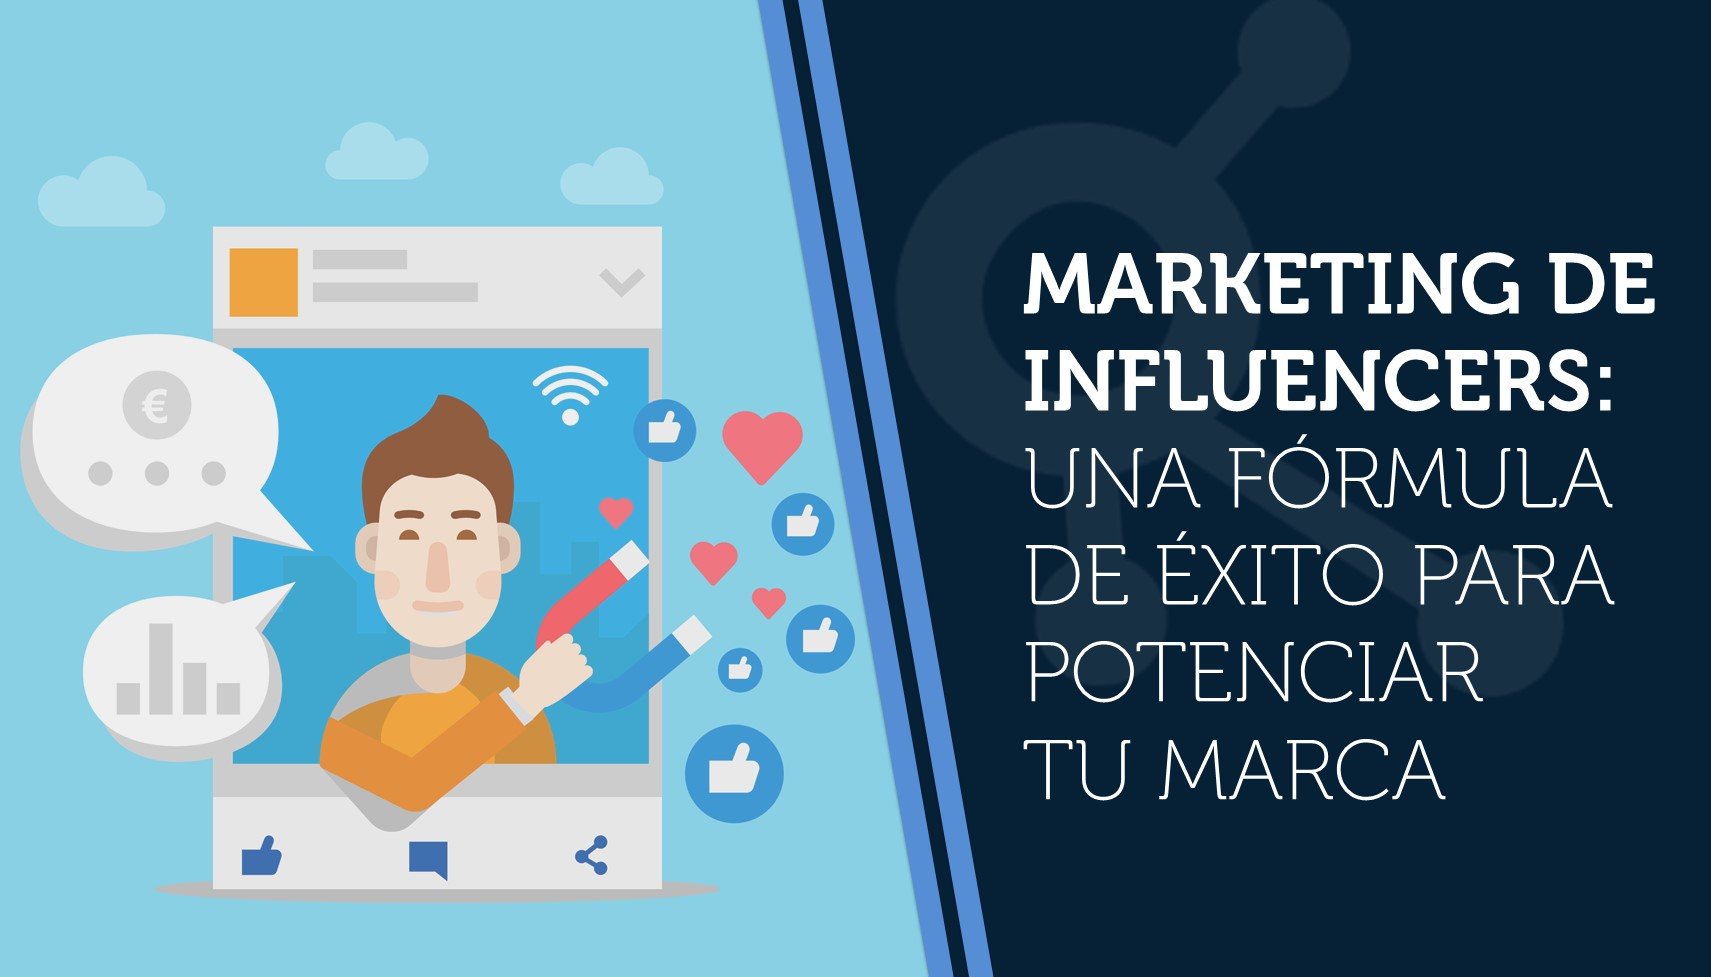 Marketing de influencers: una fórmula de éxito para potenciar tu marca